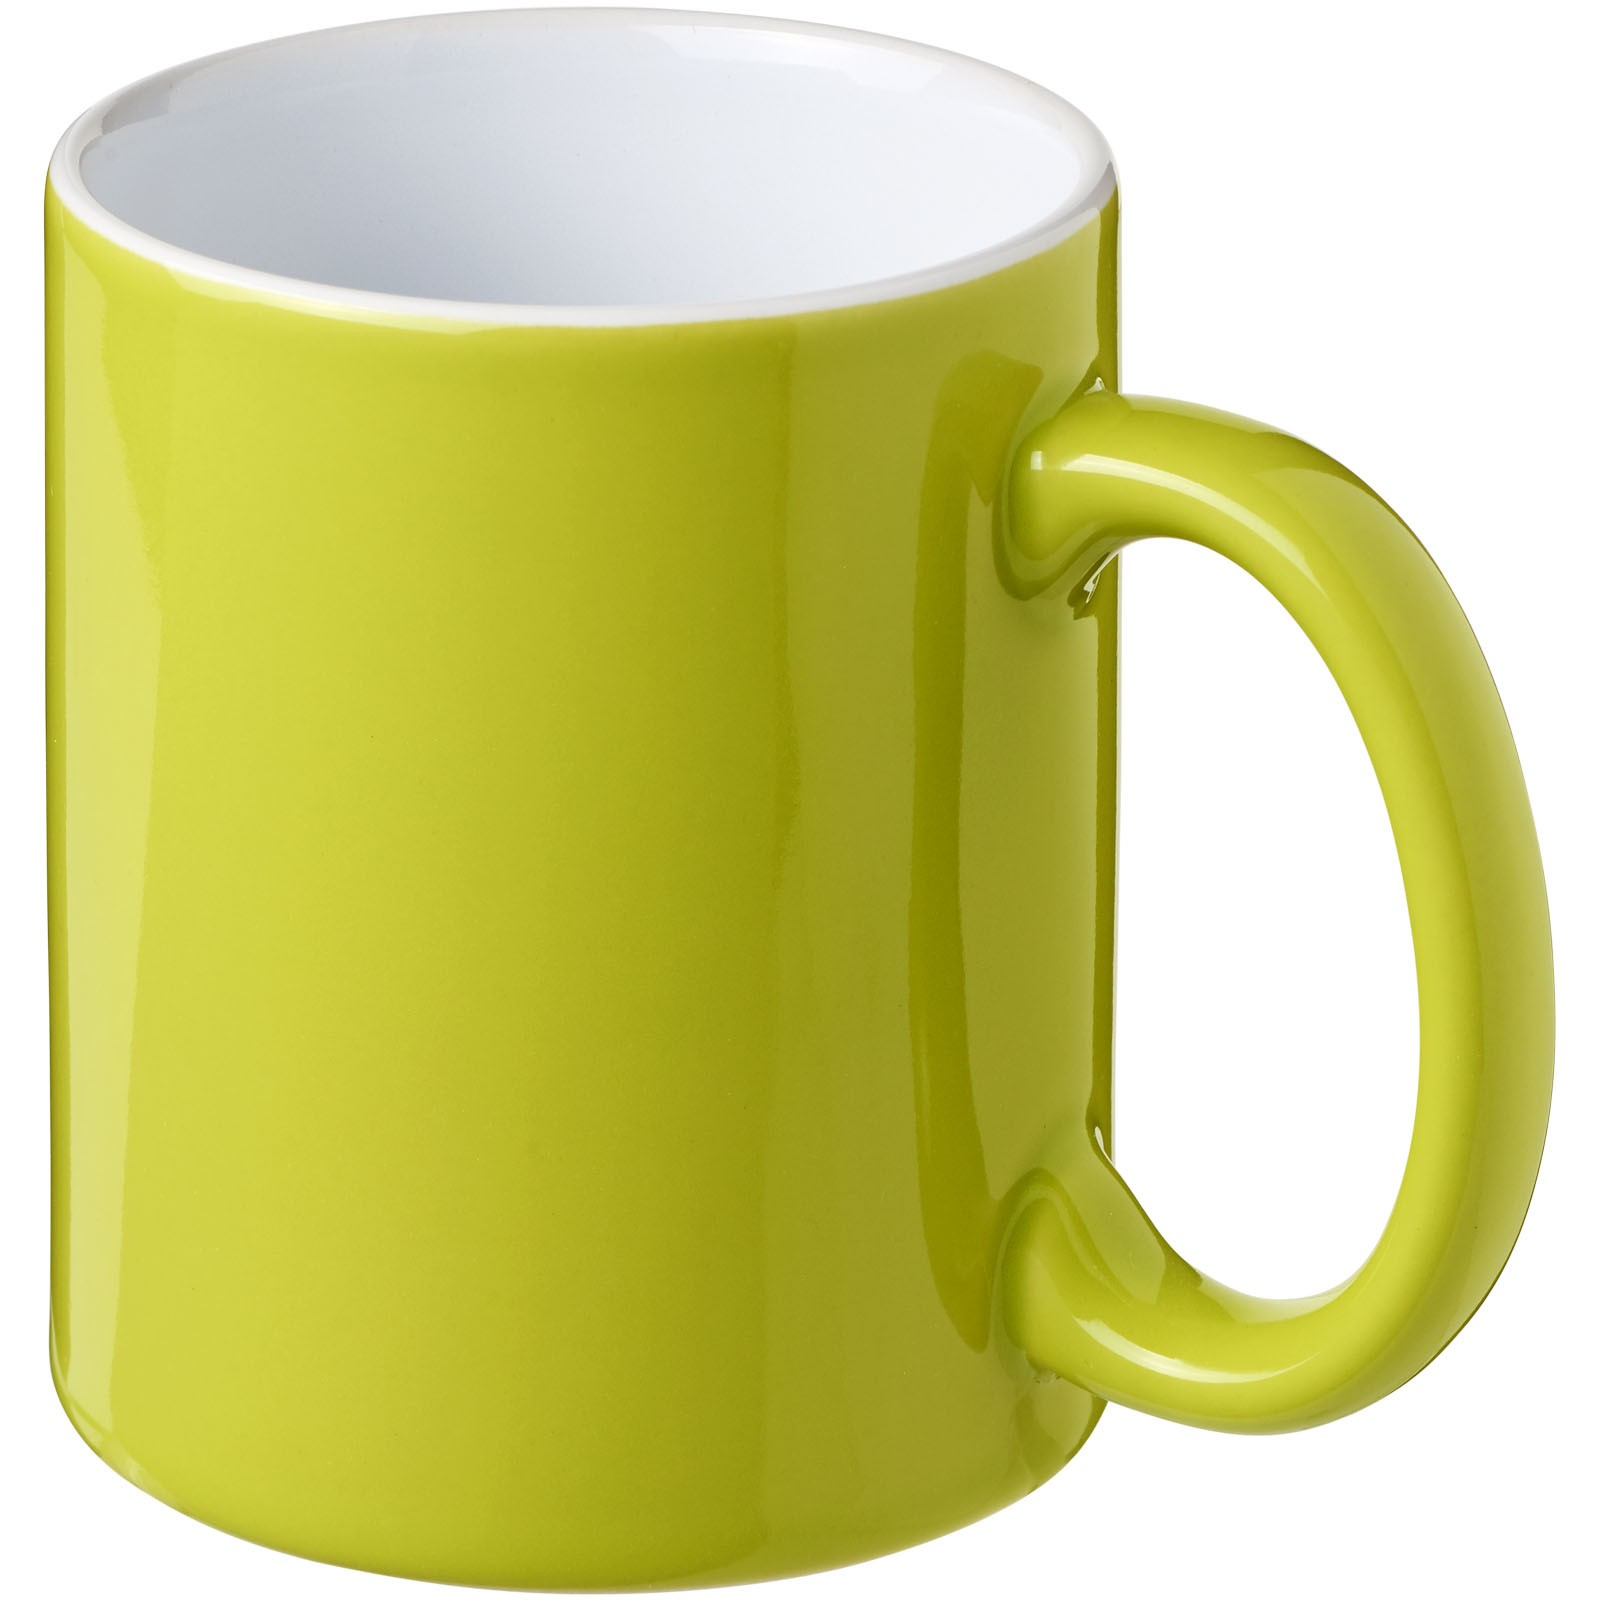 Java 330 ml ceramic mug - Lime / White